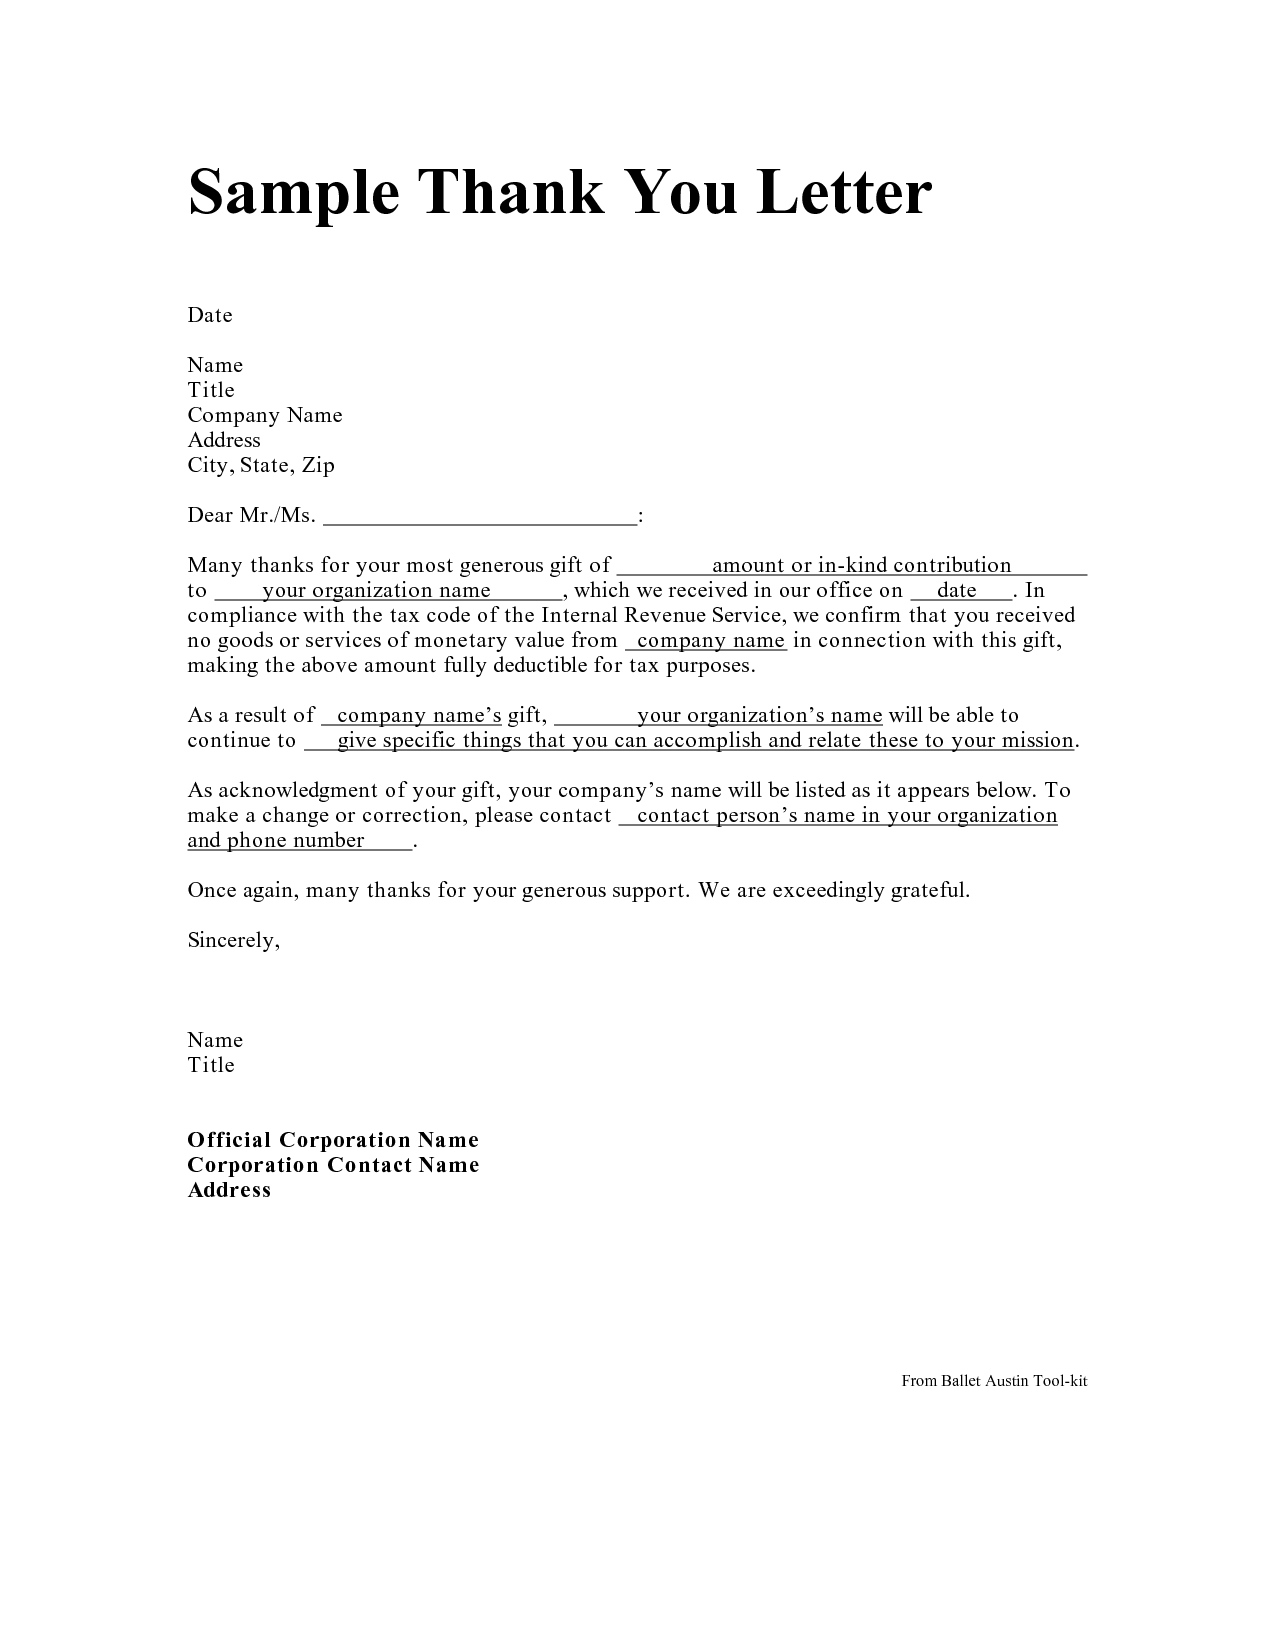 tax deductible donation thank you letter template Collection-Personal Thank You Letter Personal Thank You Letter Samples Writing Thank You Notes 15-d